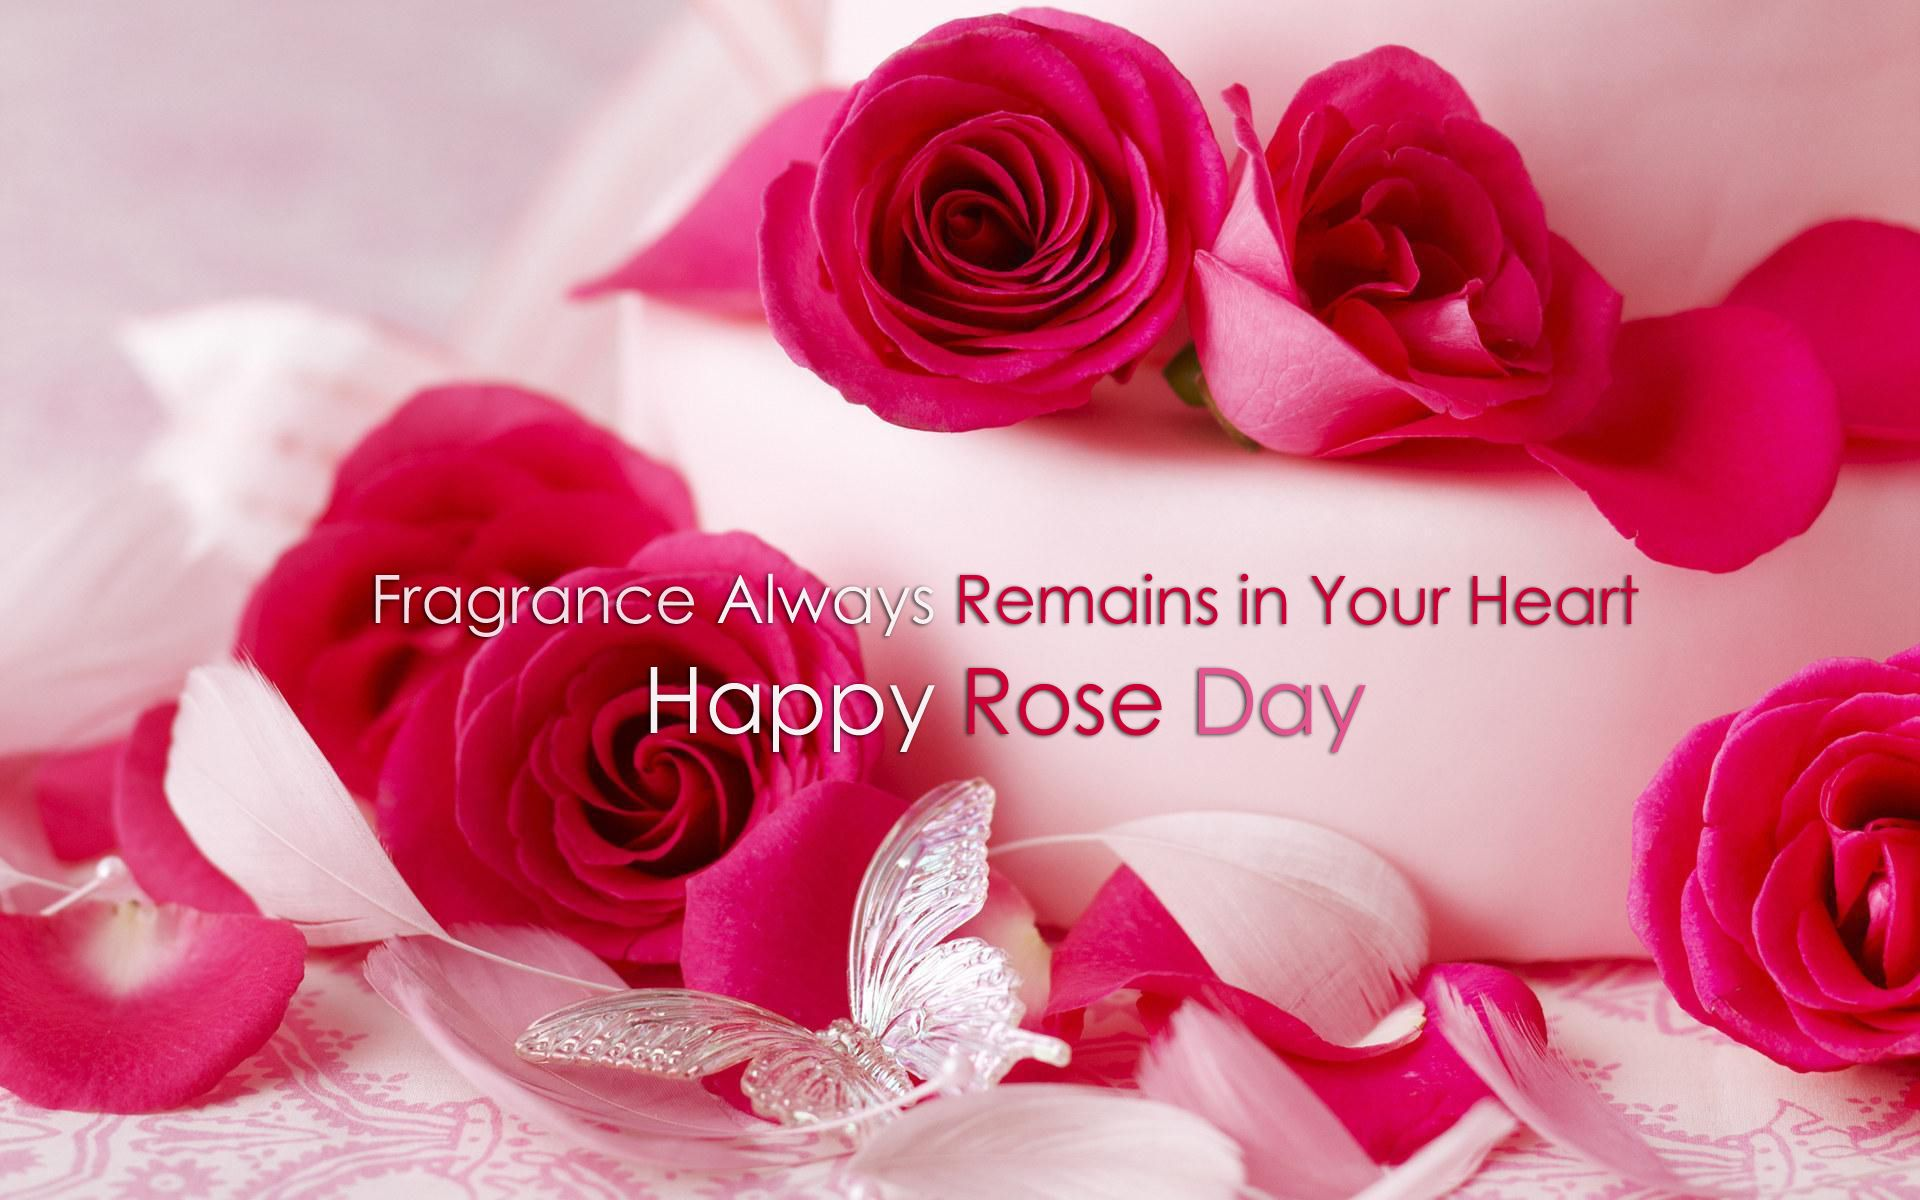 The Valentine Week Geared Up With The Rose Day On Feb 7 Every Year The Rose Day Marks The Start Of Valentine S Da Happy Rose Day Romantic Roses Rose Wallpaper